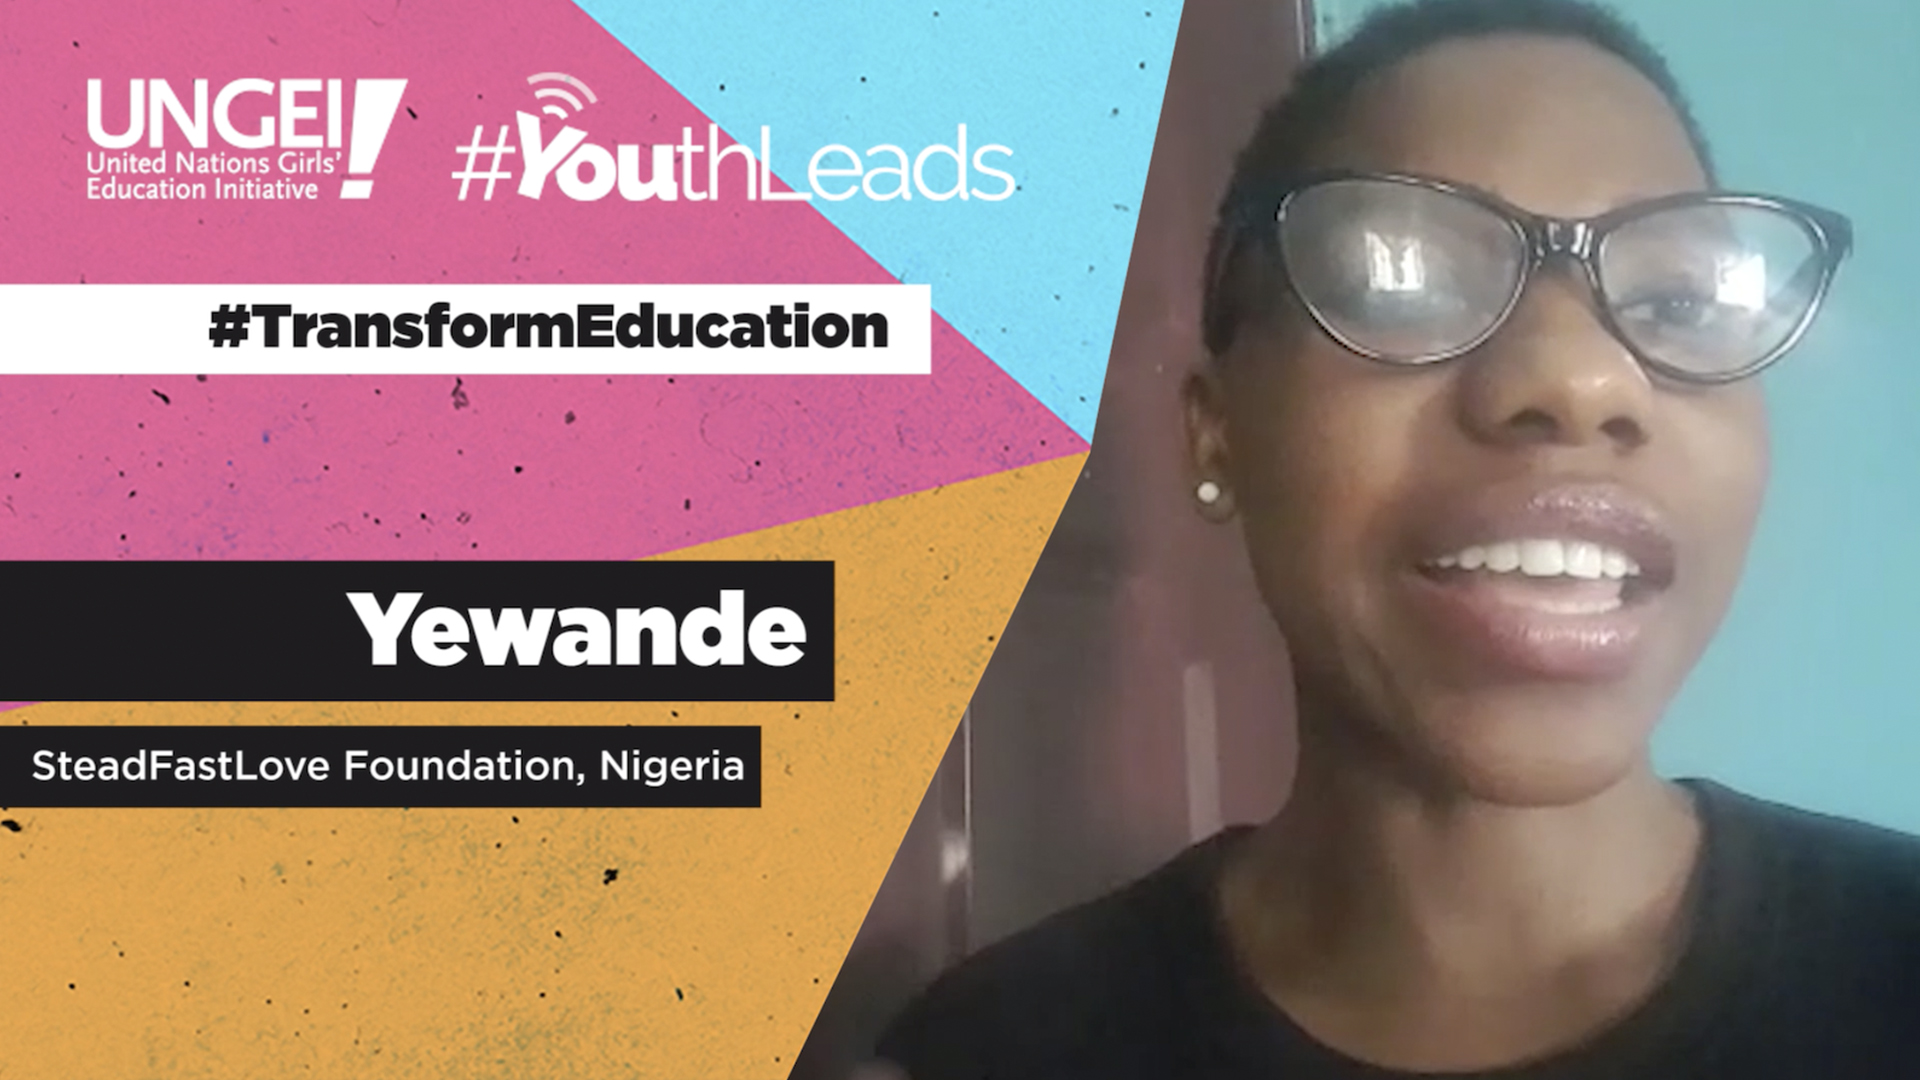 Yewande, SteadFastLove Foundation, Nigeria